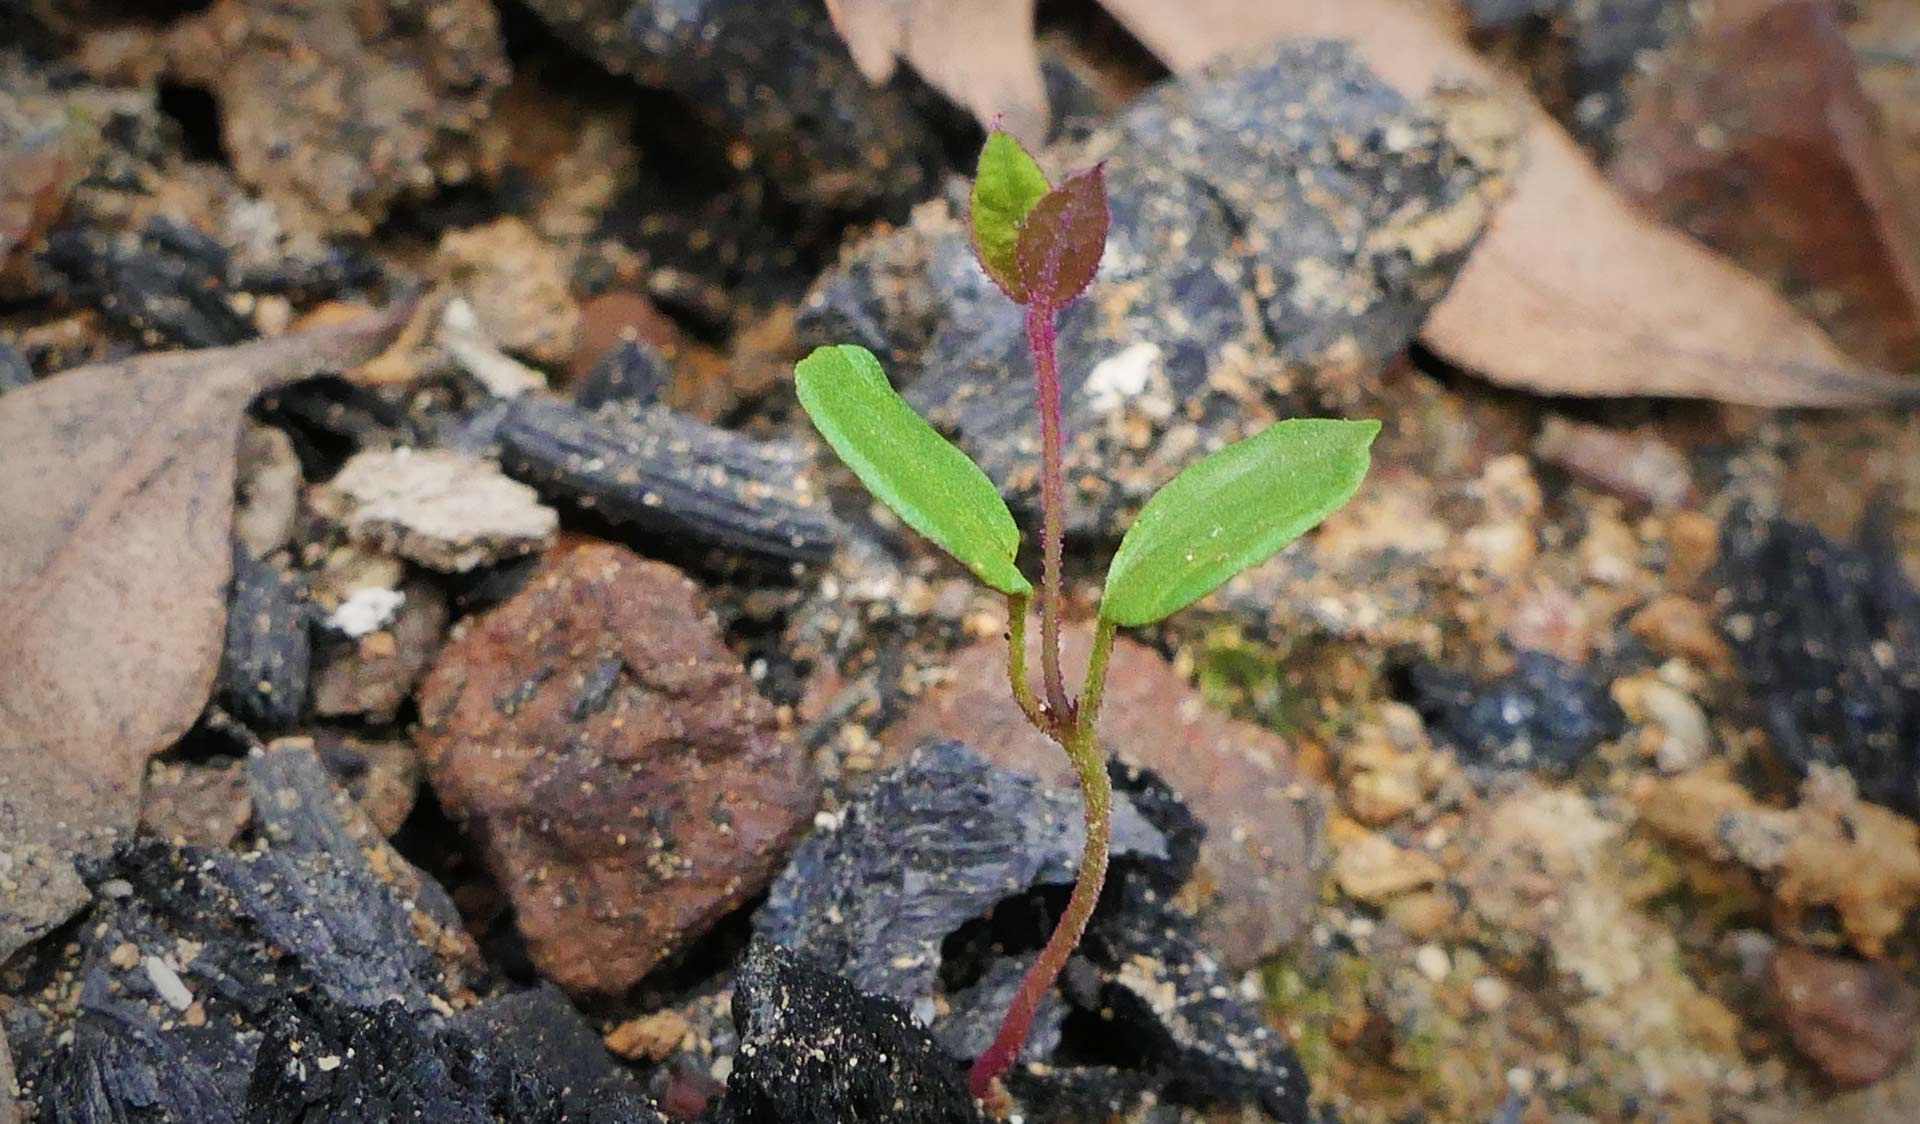 Spotted gum seedling